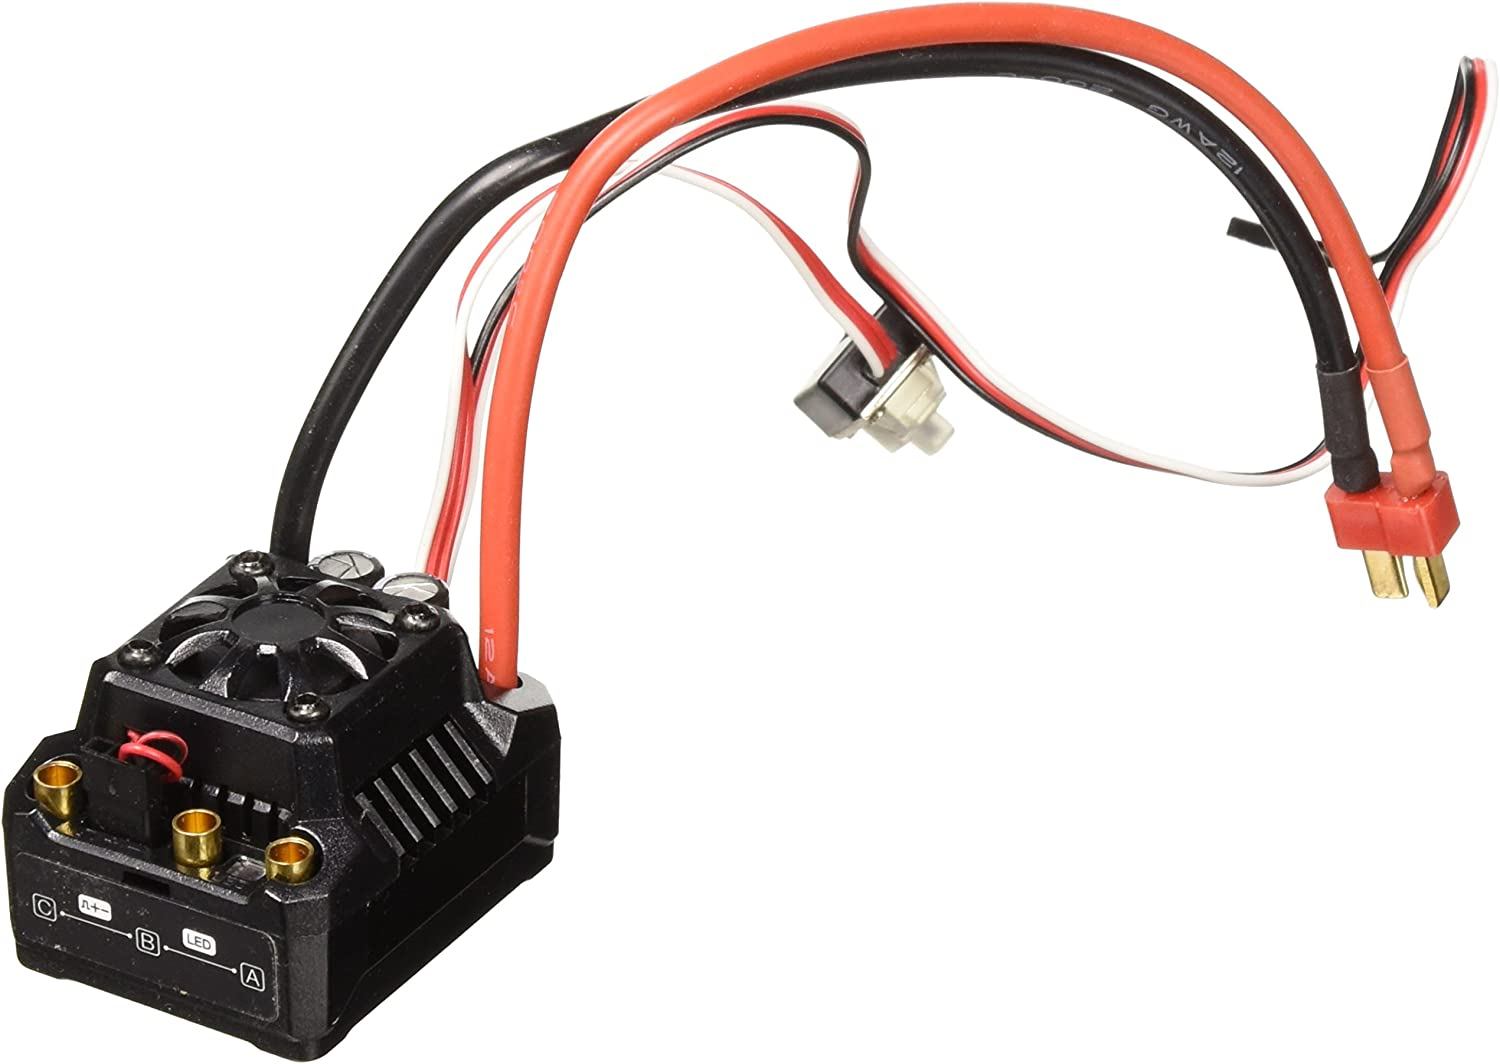 Team Redcat THOR Max 74% OFF MAX-10 80A ESC Brushless V Recommendation for 11.1 Motor